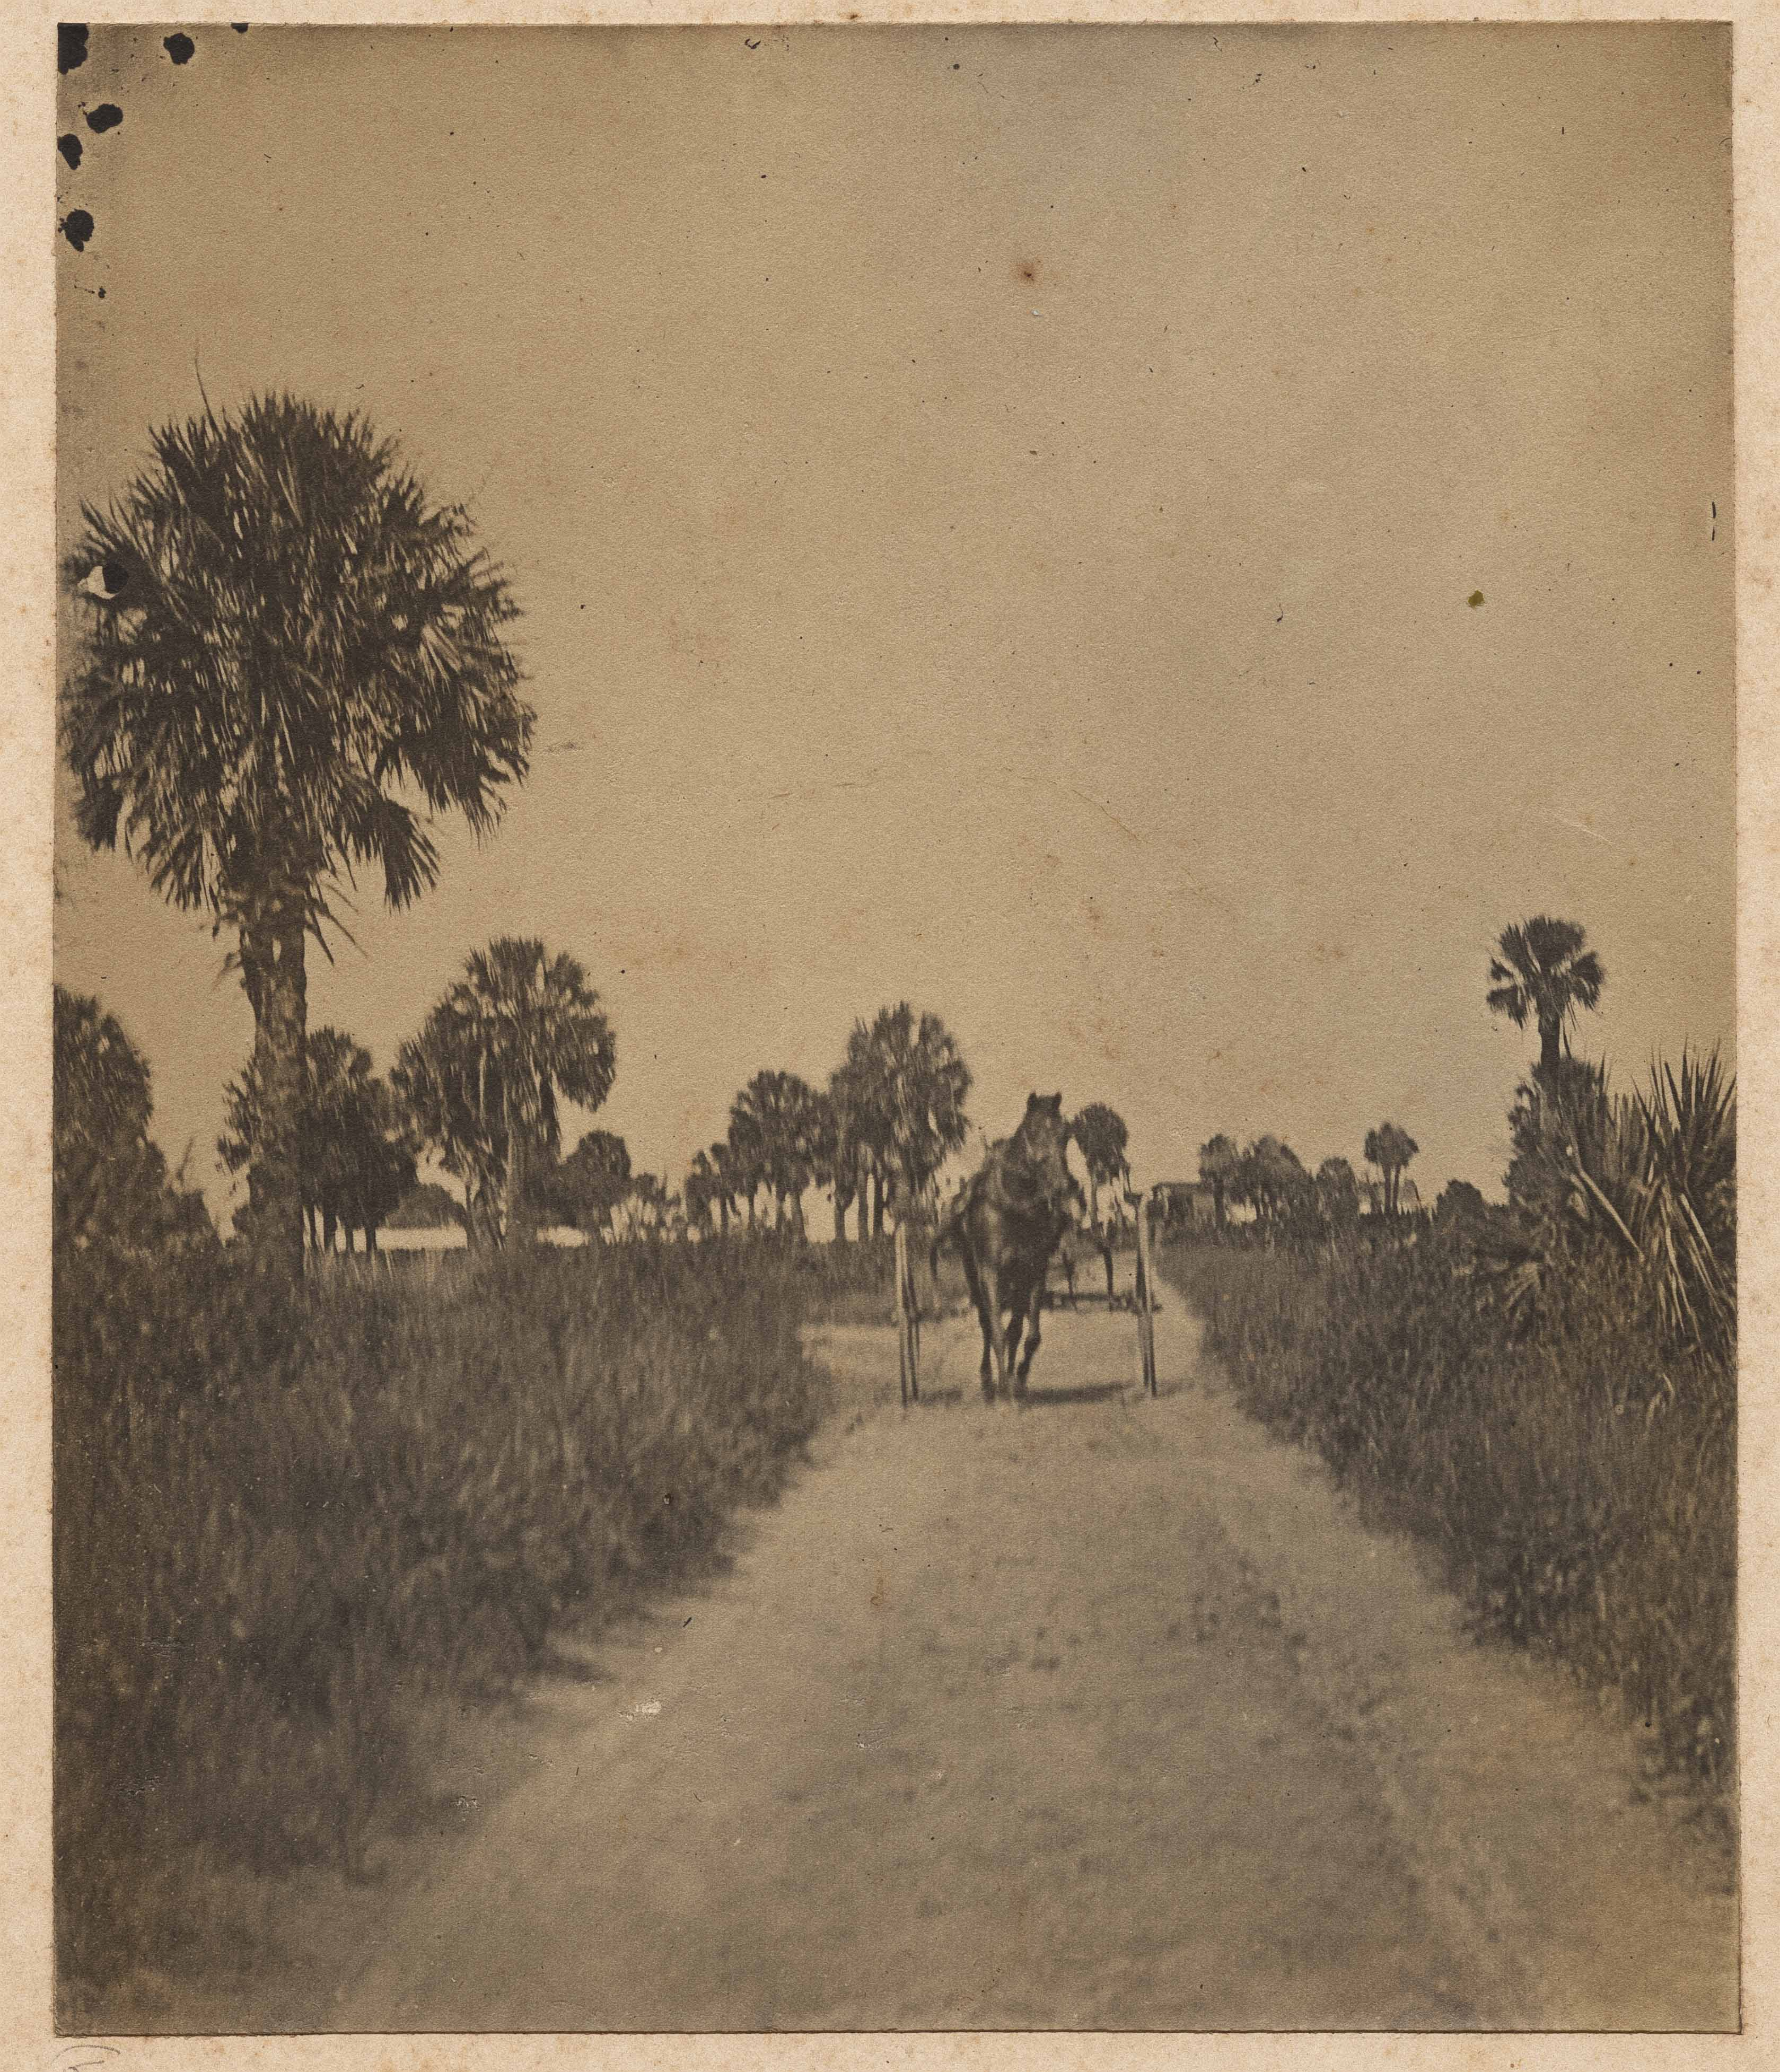 Horse and buggy.